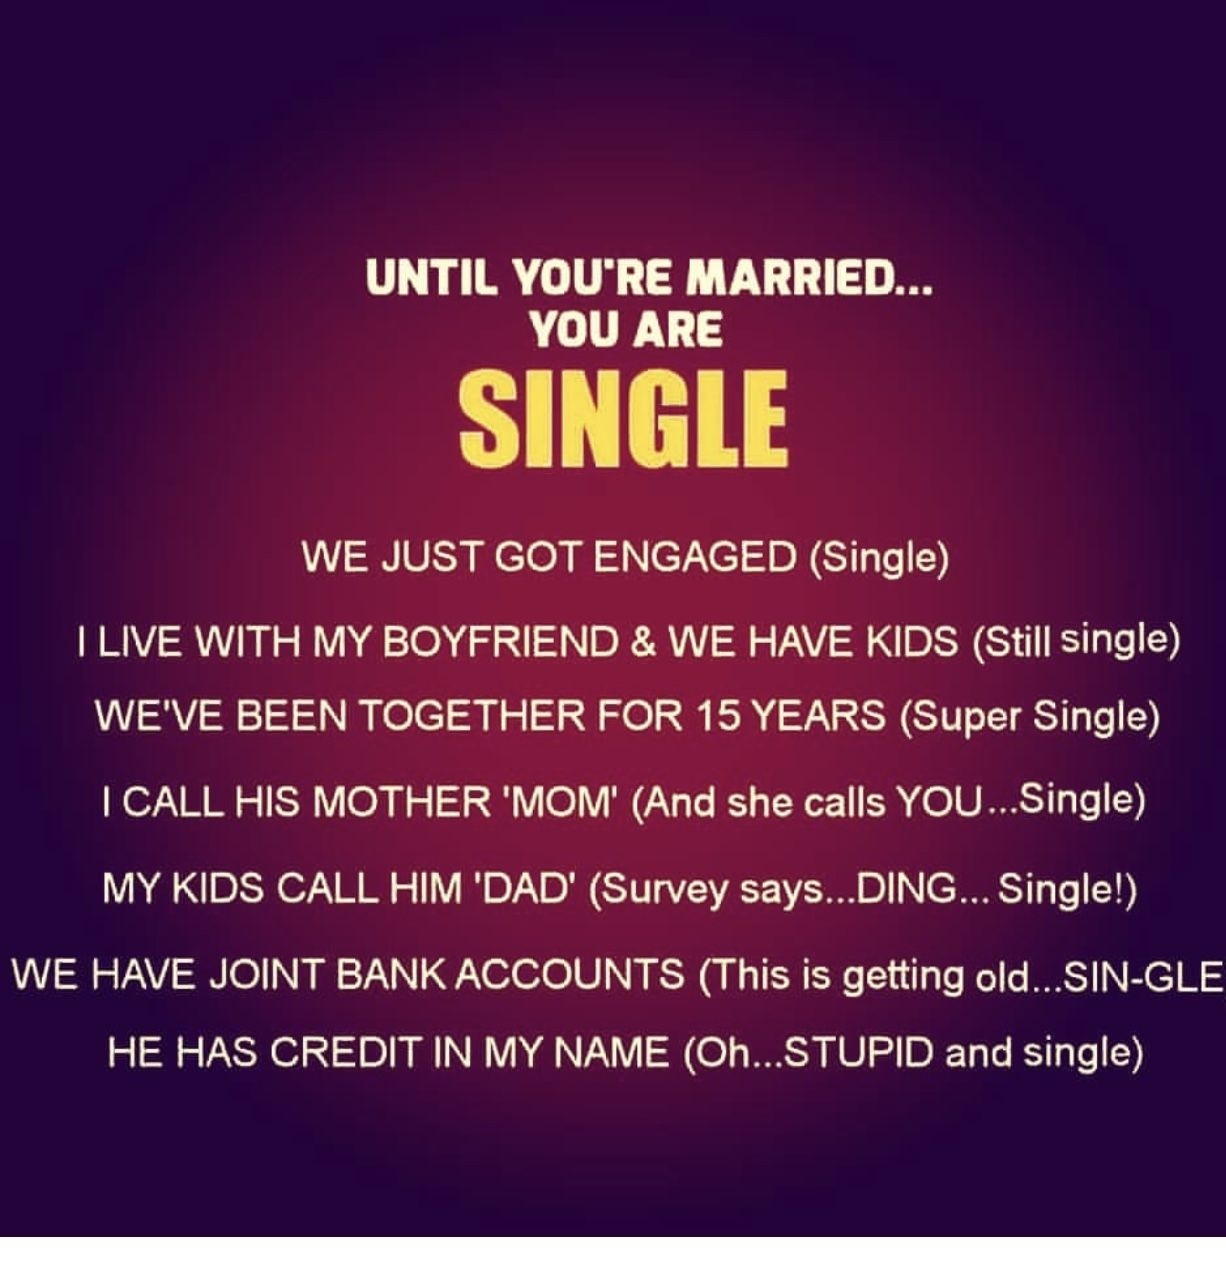 Pin By Lola On Humor Togetherness My Boyfriend Sayings